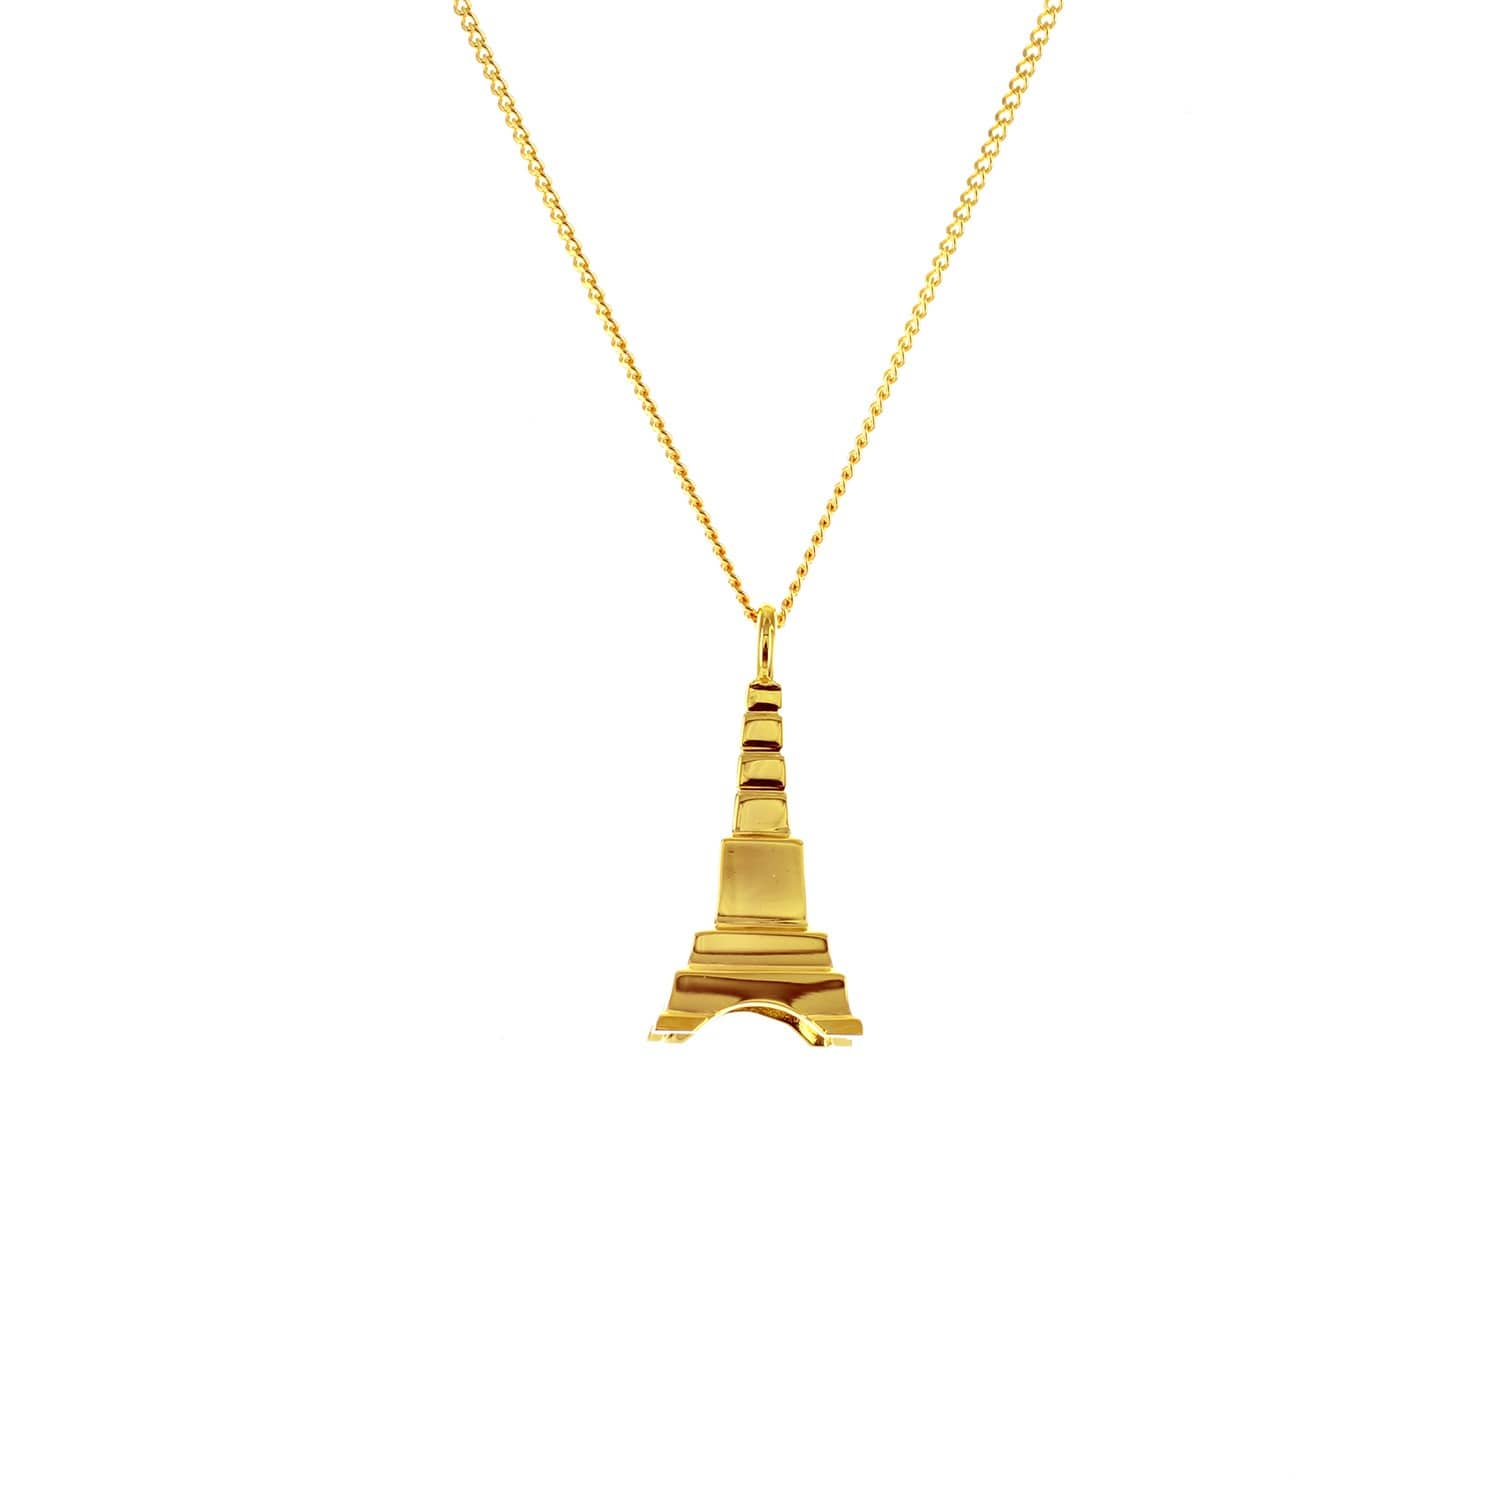 Origami Jewellery Sterling Silver Mini Eiffel Tower Origami Necklace SVLqY56Y